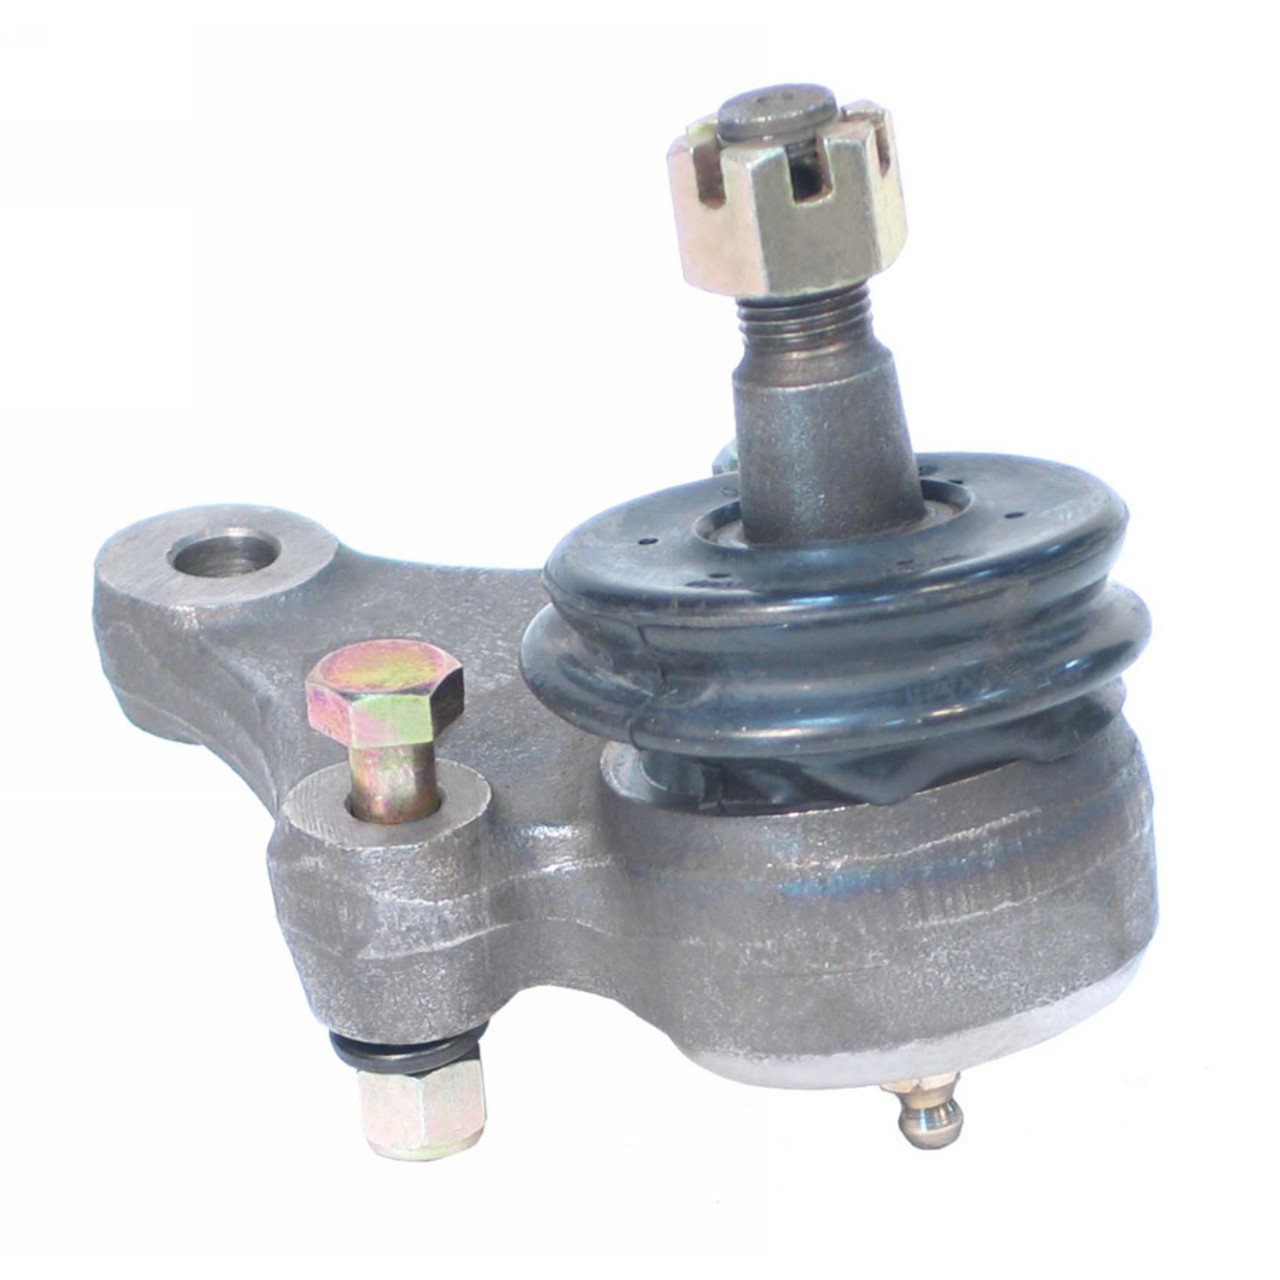 medium resolution of rare parts lower right ball joint 1965 1967 nissan datsun 411 10210 fcrc machine